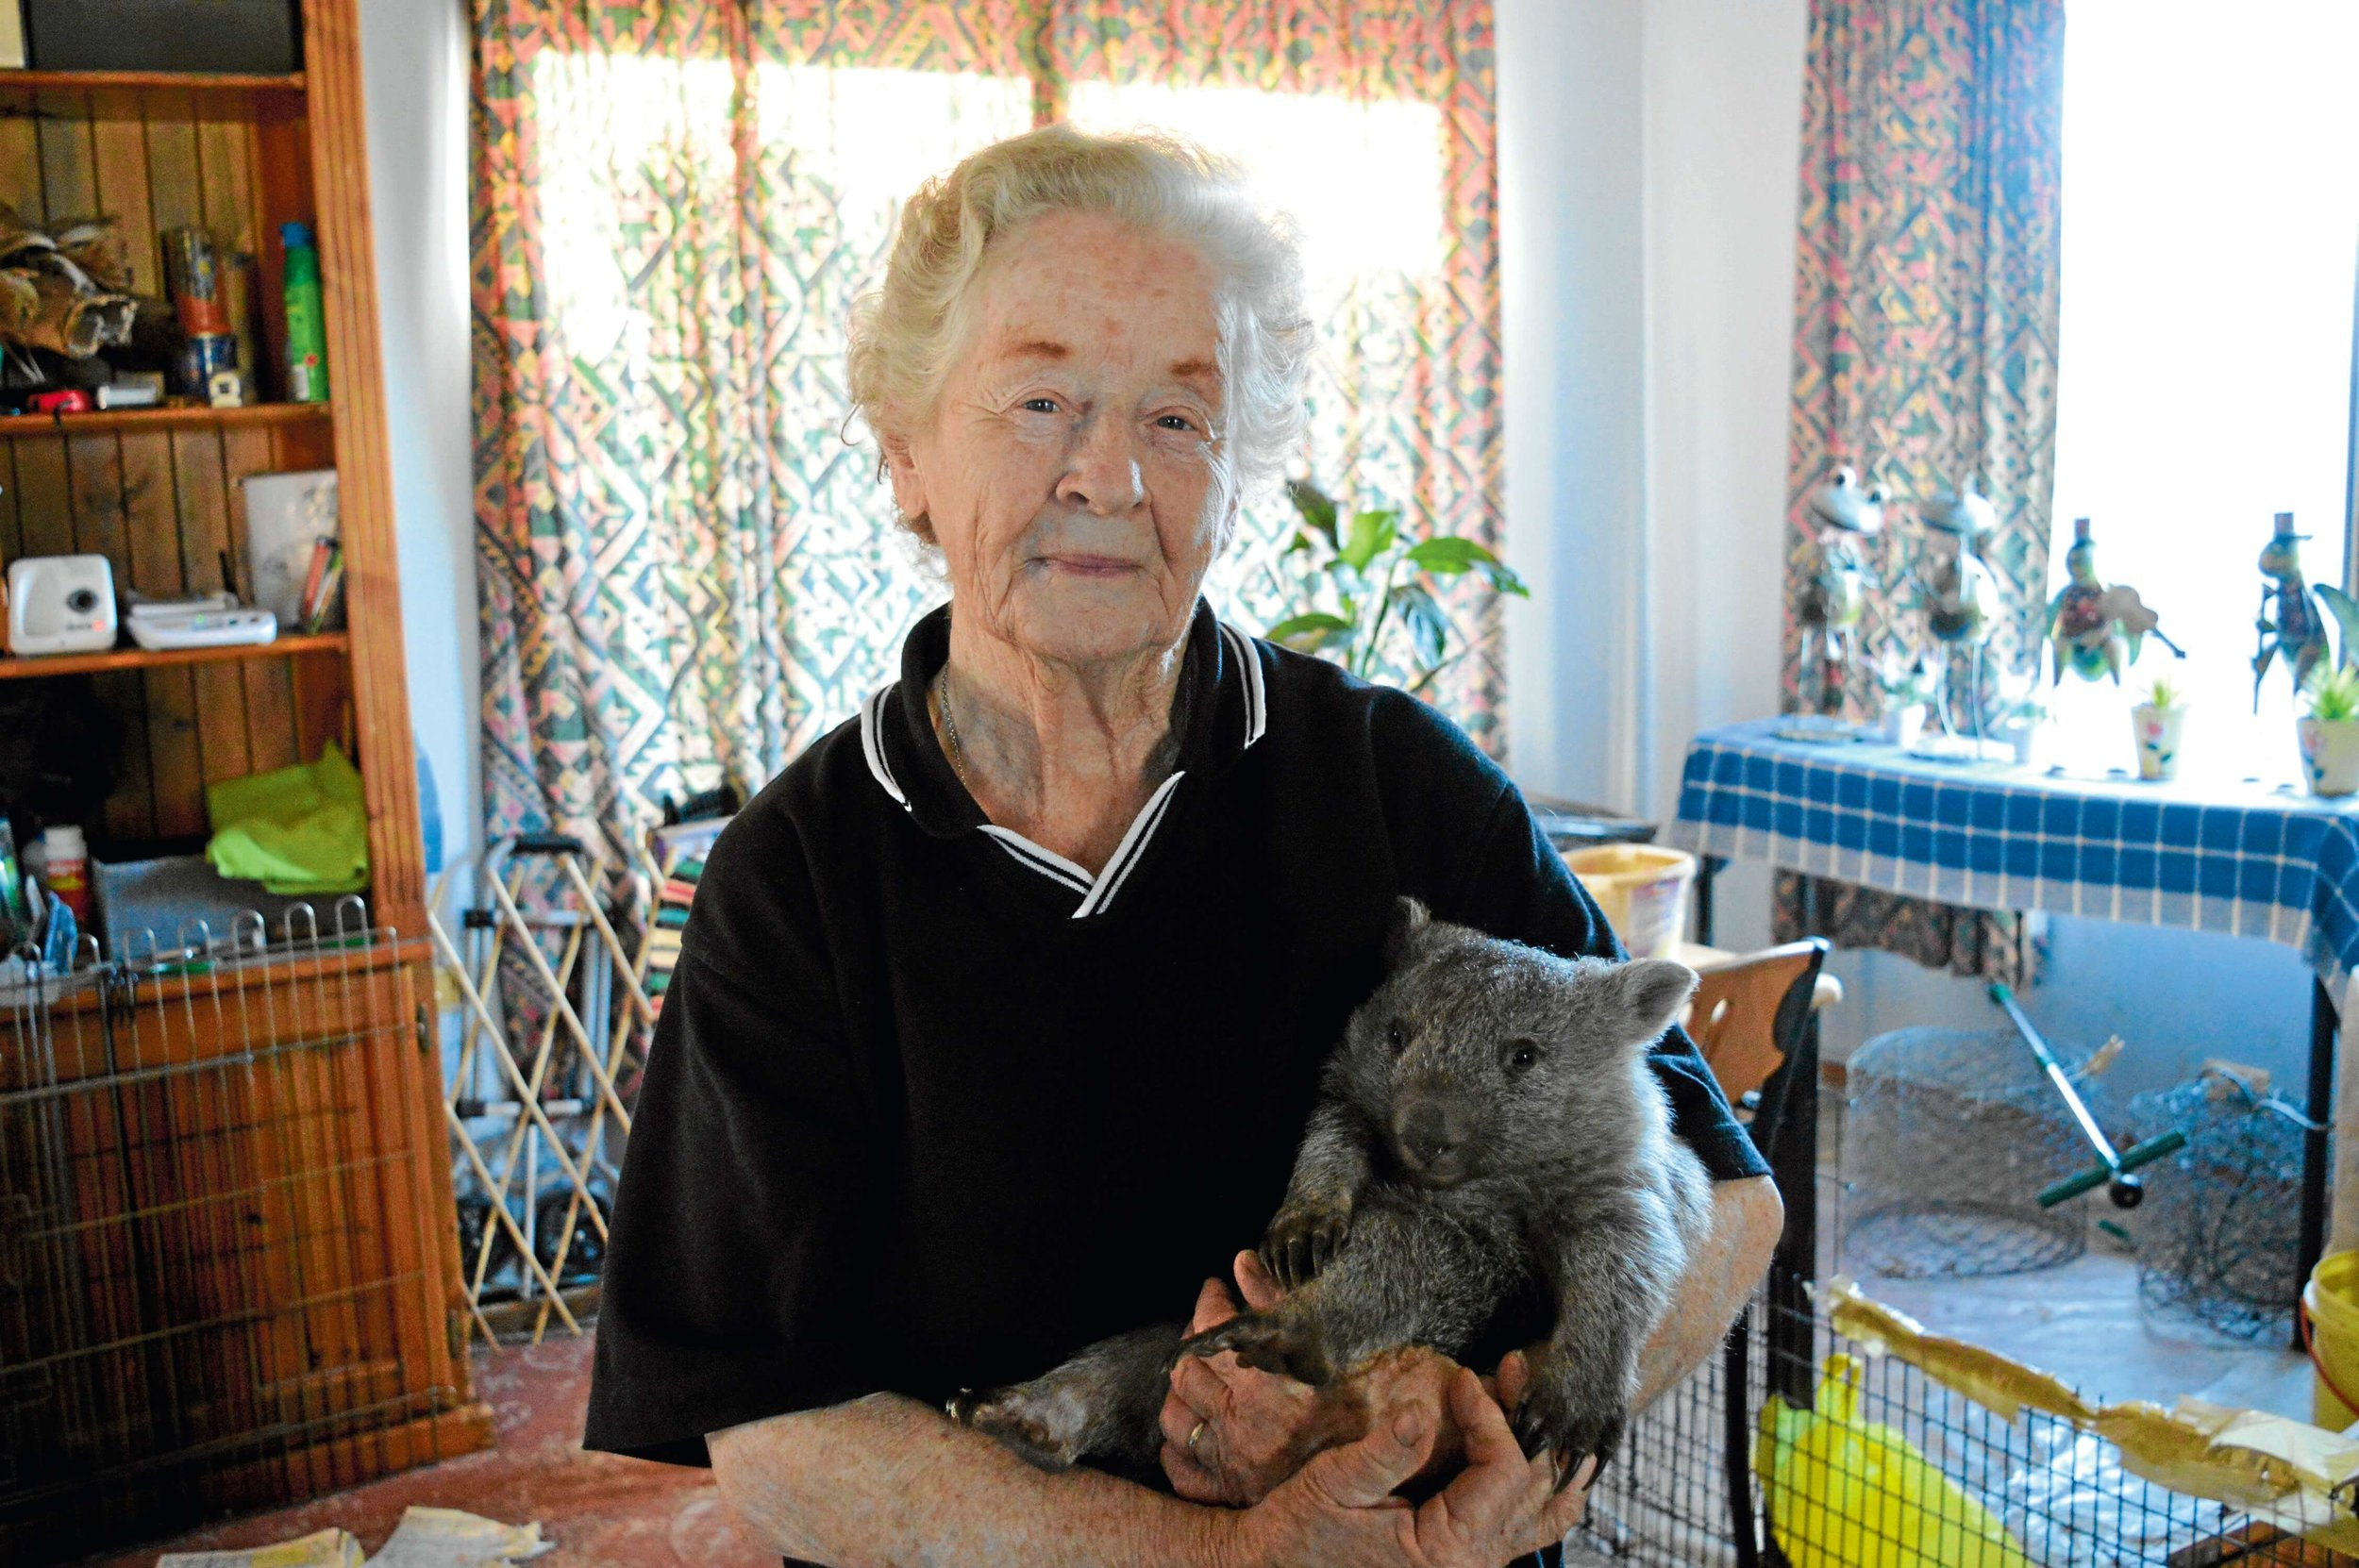 • Much-loved Bridport wildlife carer Norma Baker with one of the young wombats she's caring for, Silver Streak.